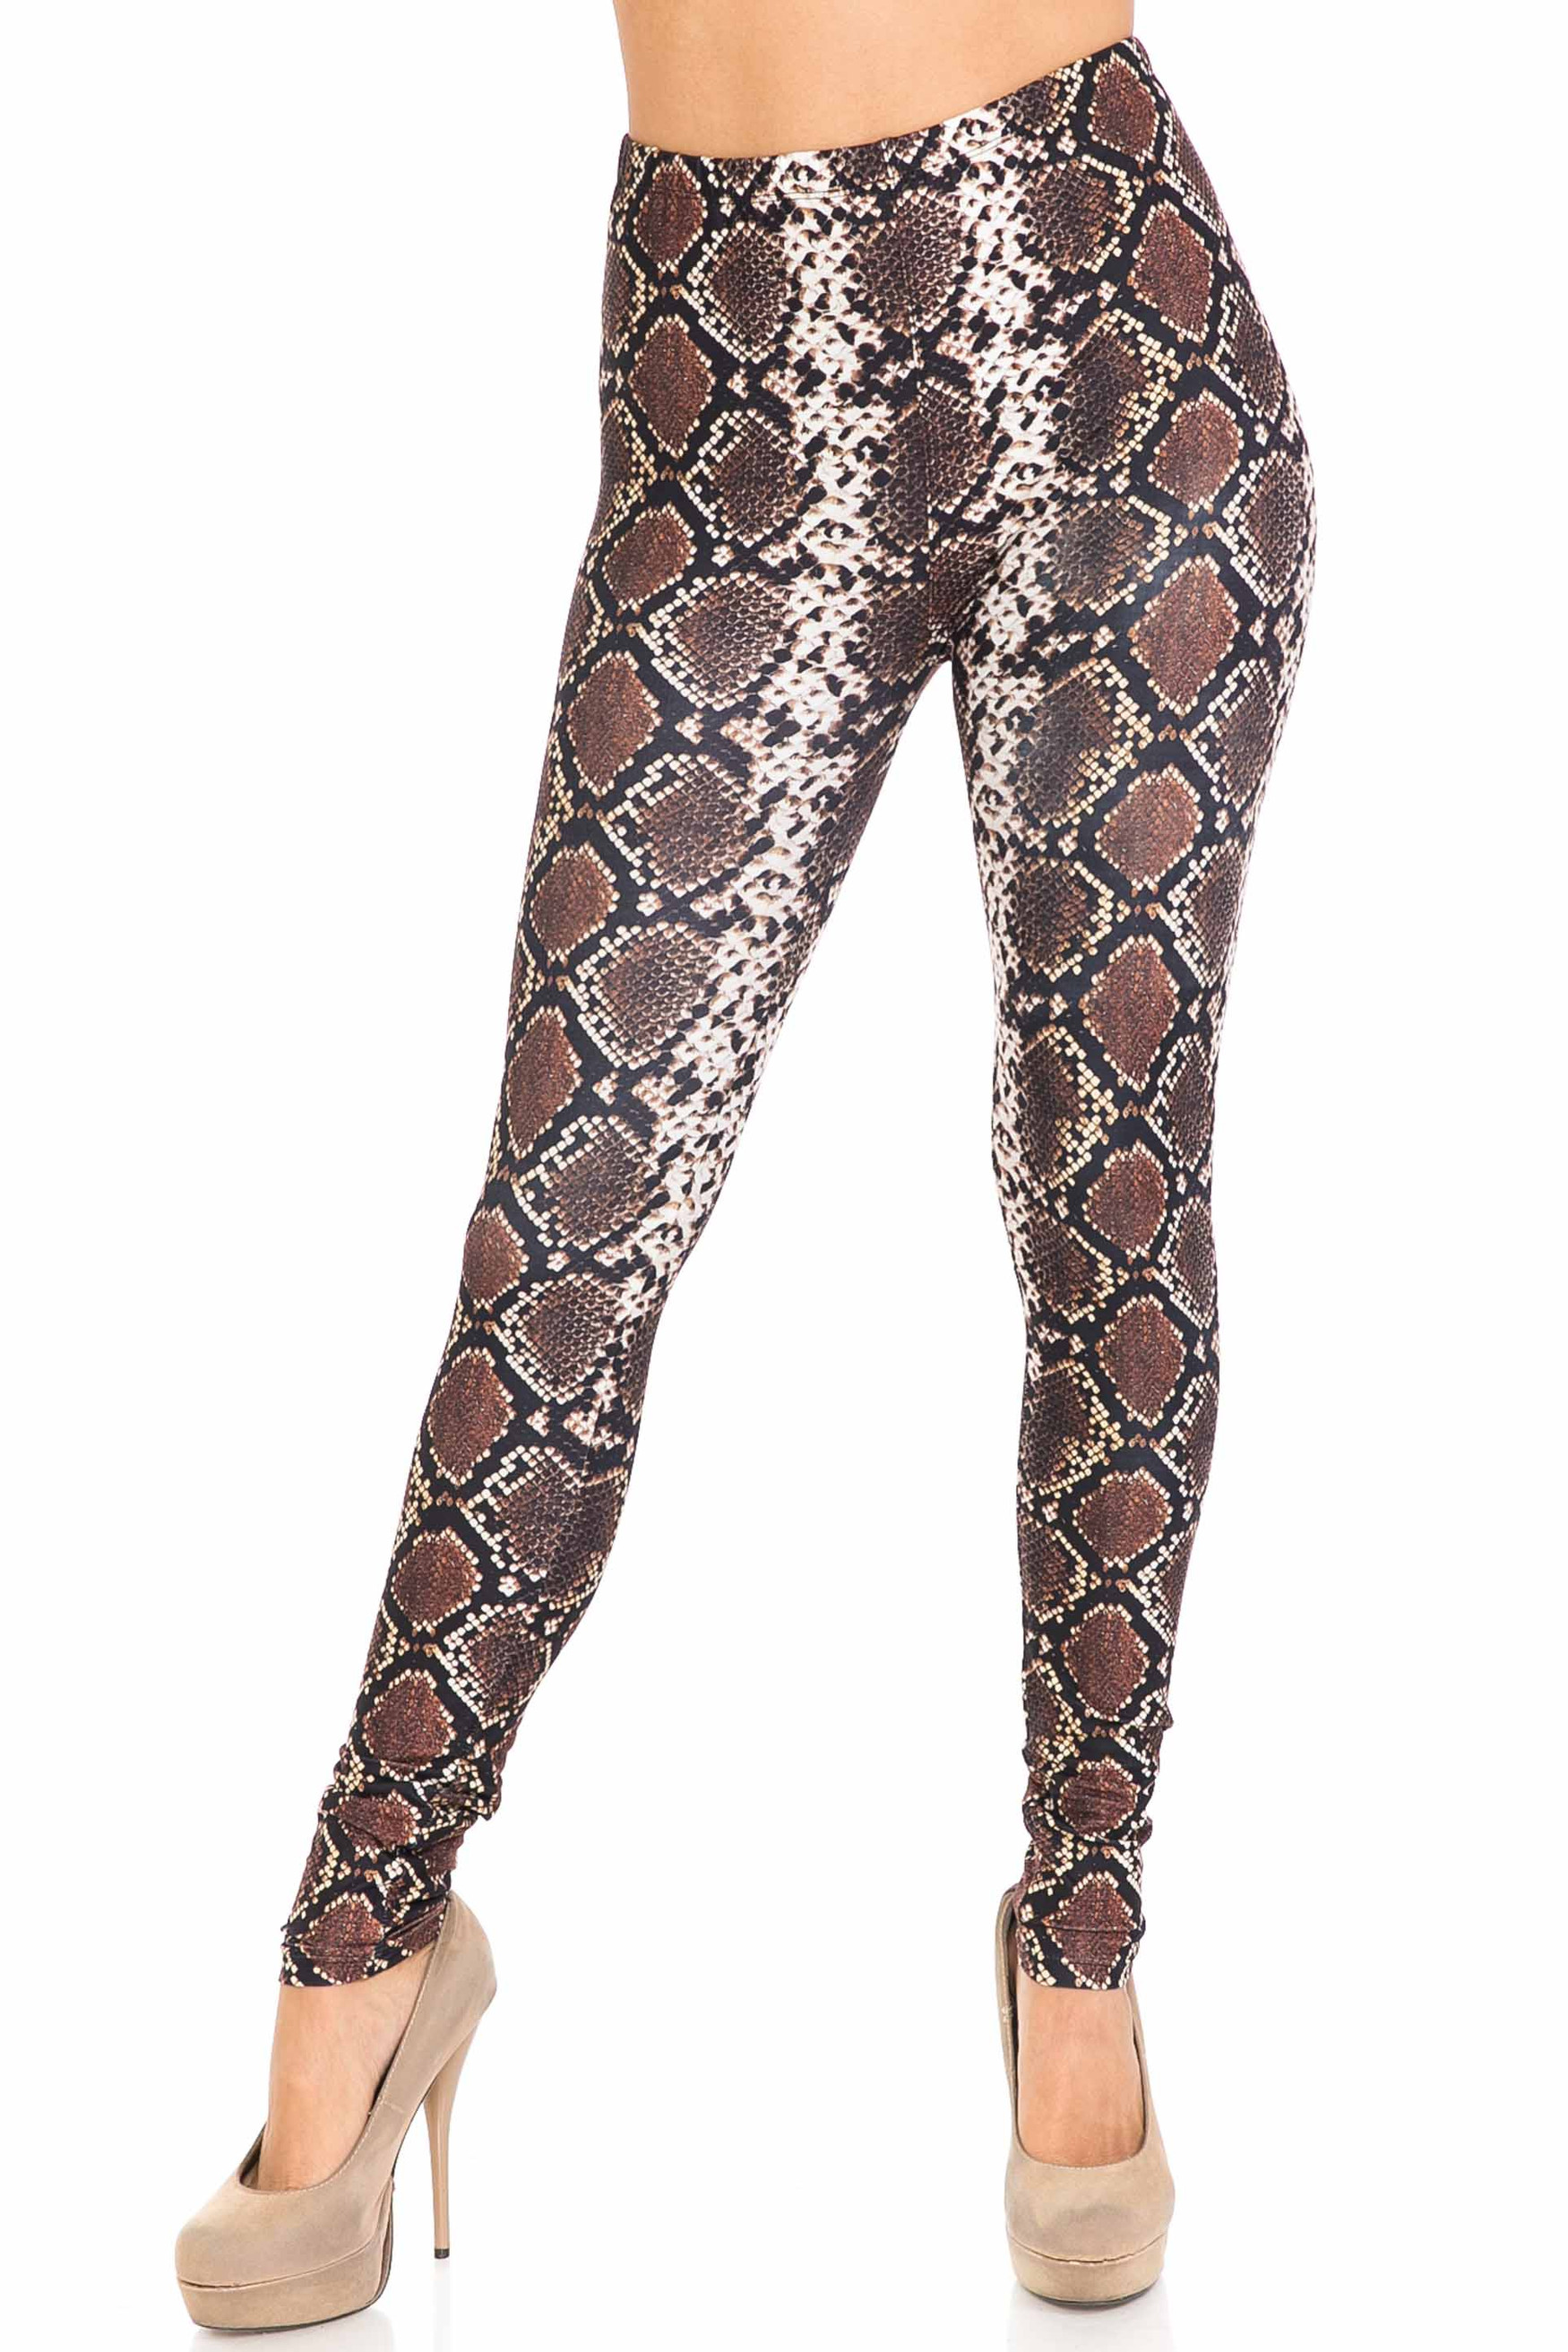 Front of Creamy Soft Steel Brown Leggings - USA Fashion™ with a fitted skinny leg and full length hem.